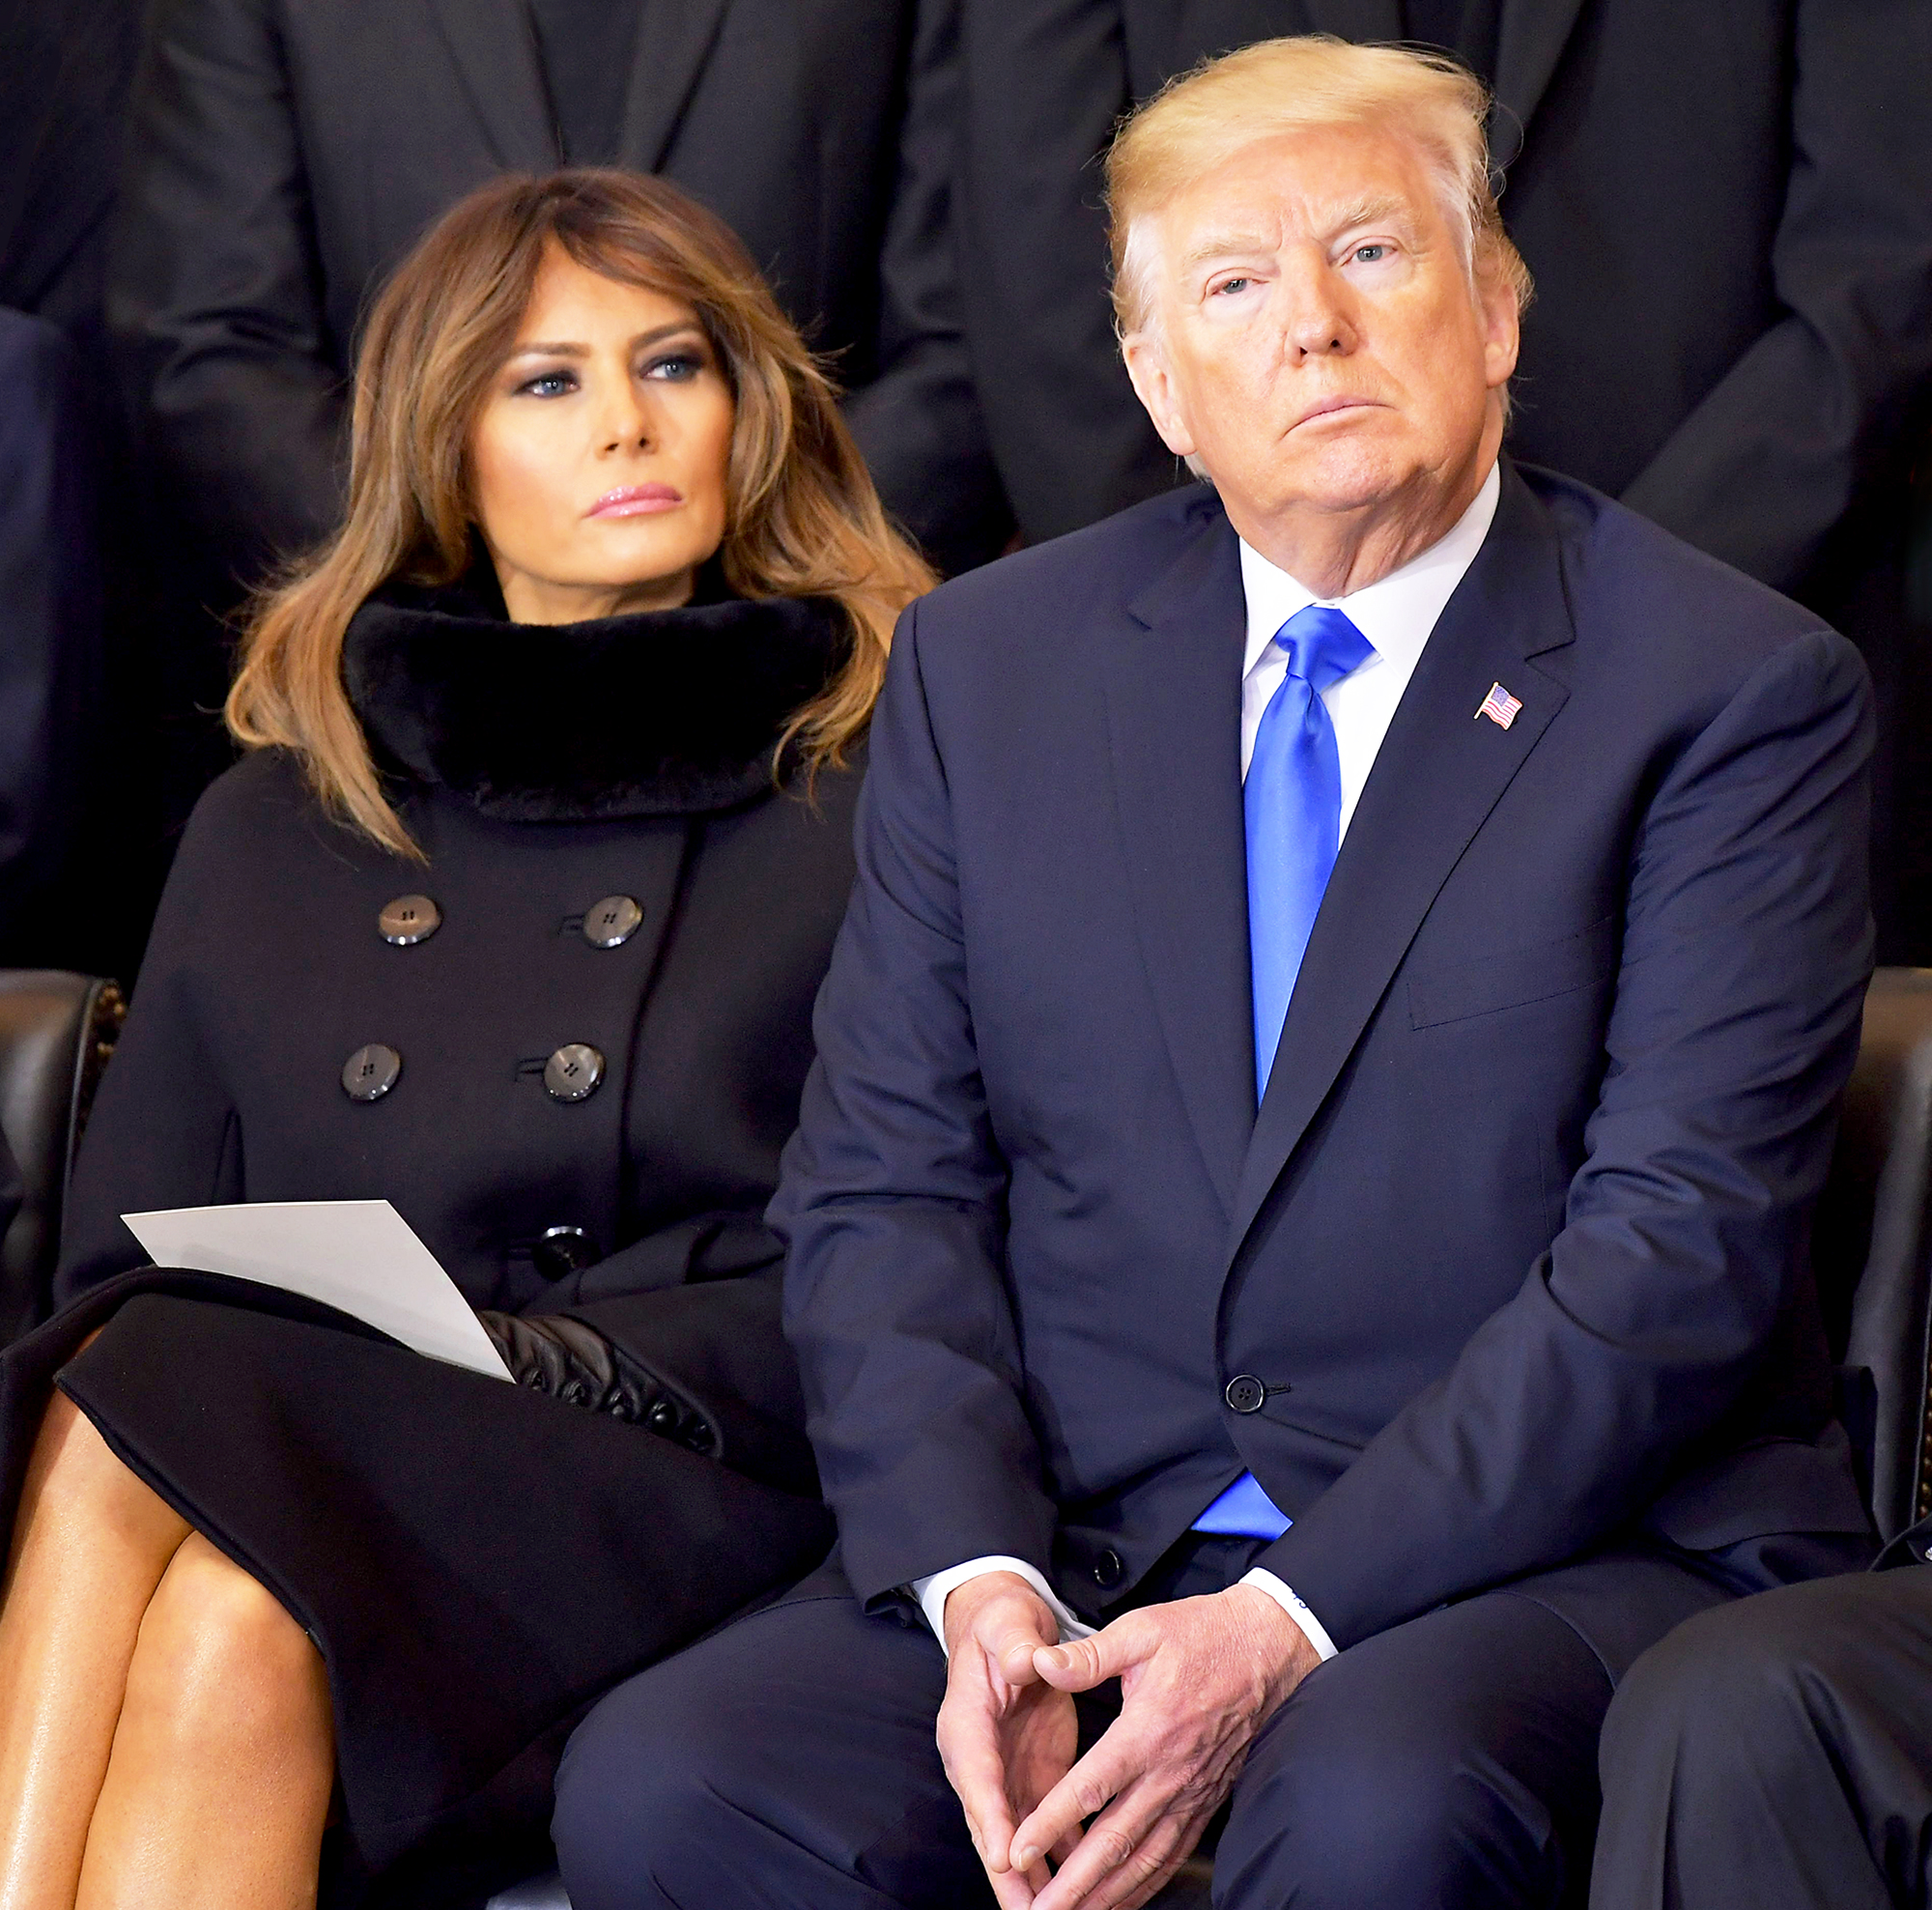 President Trump Says Melania's Controversial Jacket Directed at 'Fake News Media'